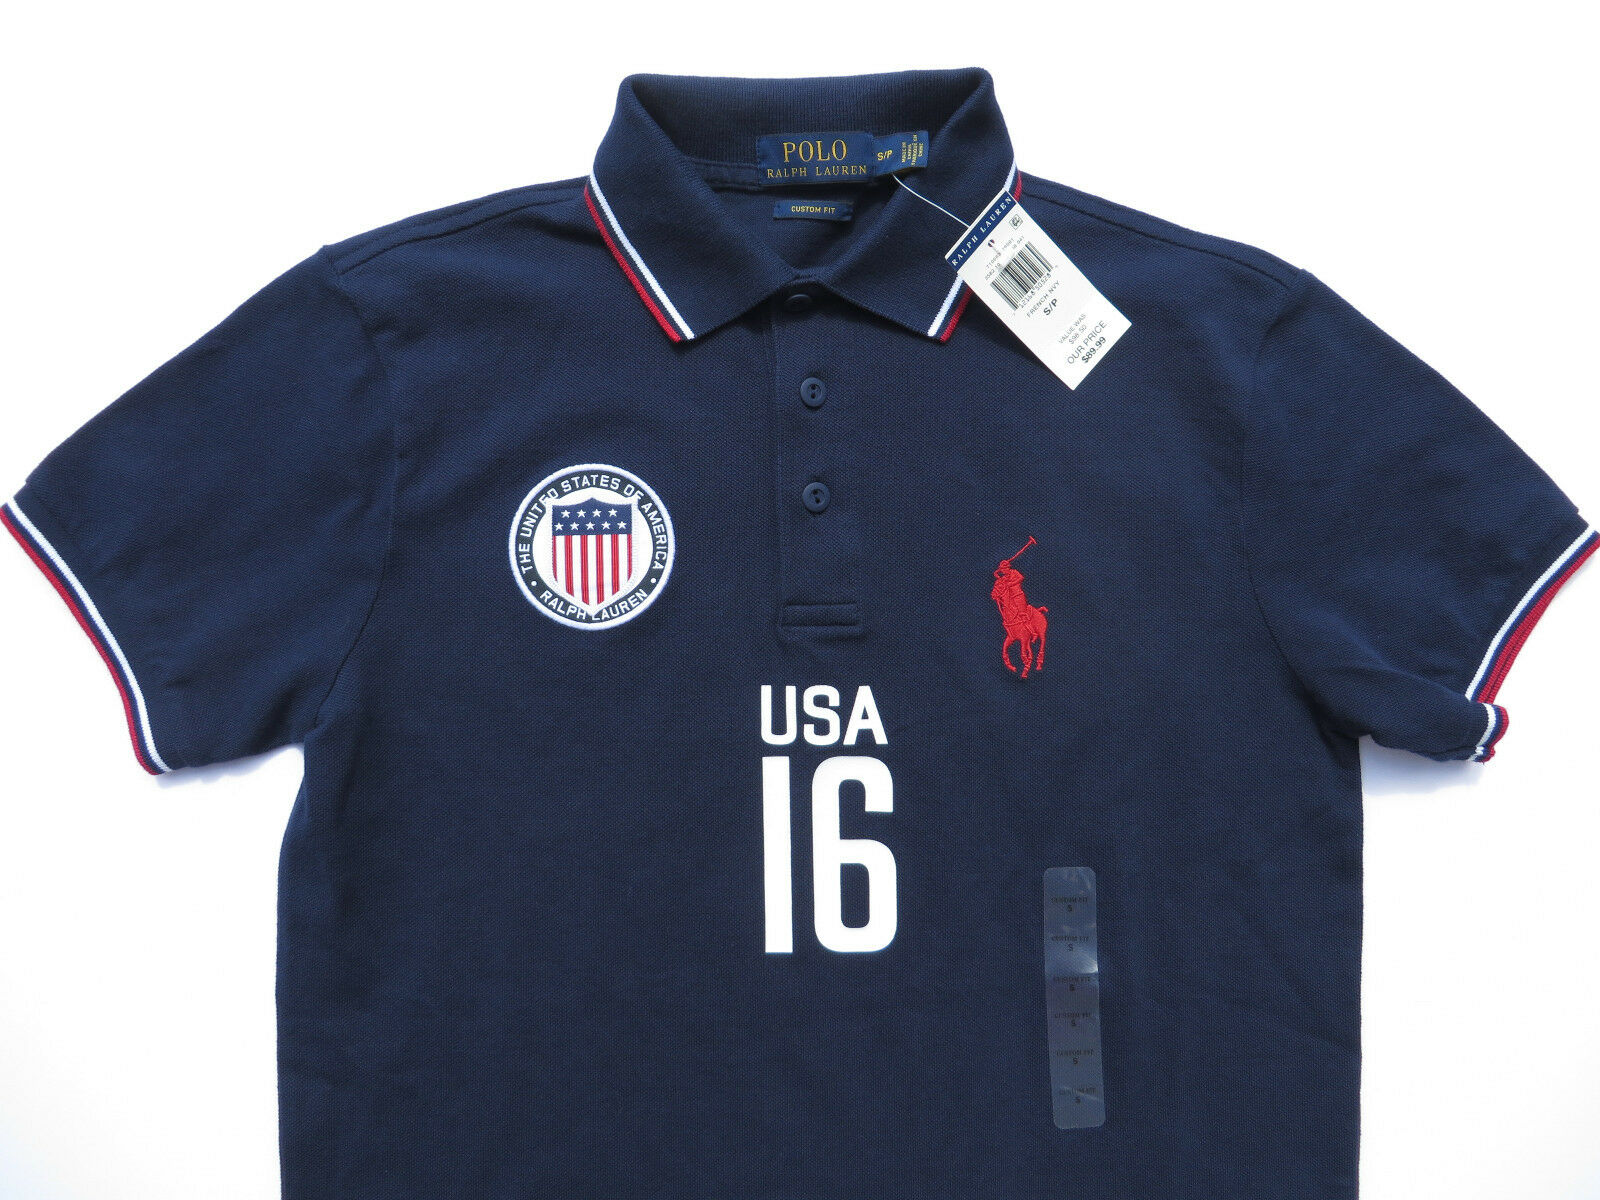 RALPH LAUREN POLO USA Mens Shirt Small Large NEW bluee Big Pony US country NWT